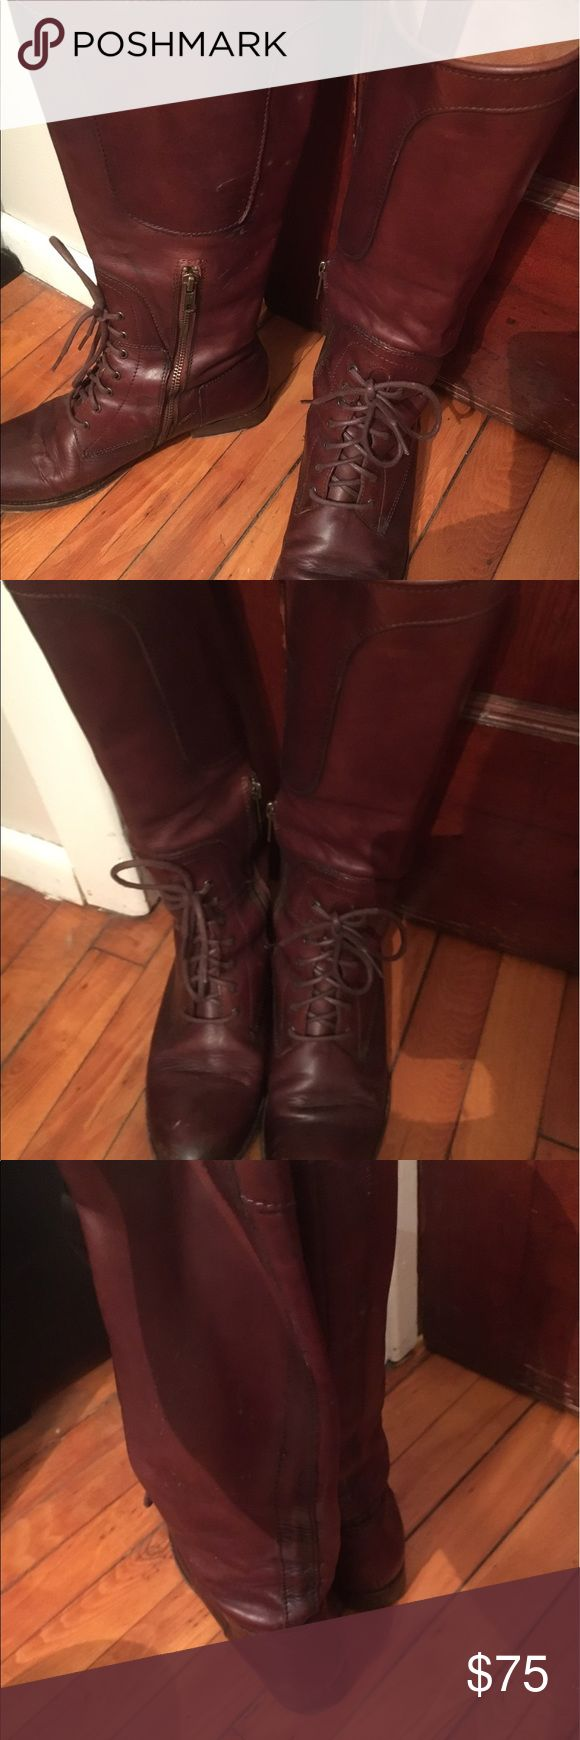 Frye riding boots 8 As pictured Frye boots 8 Frye Shoes Lace Up Boots